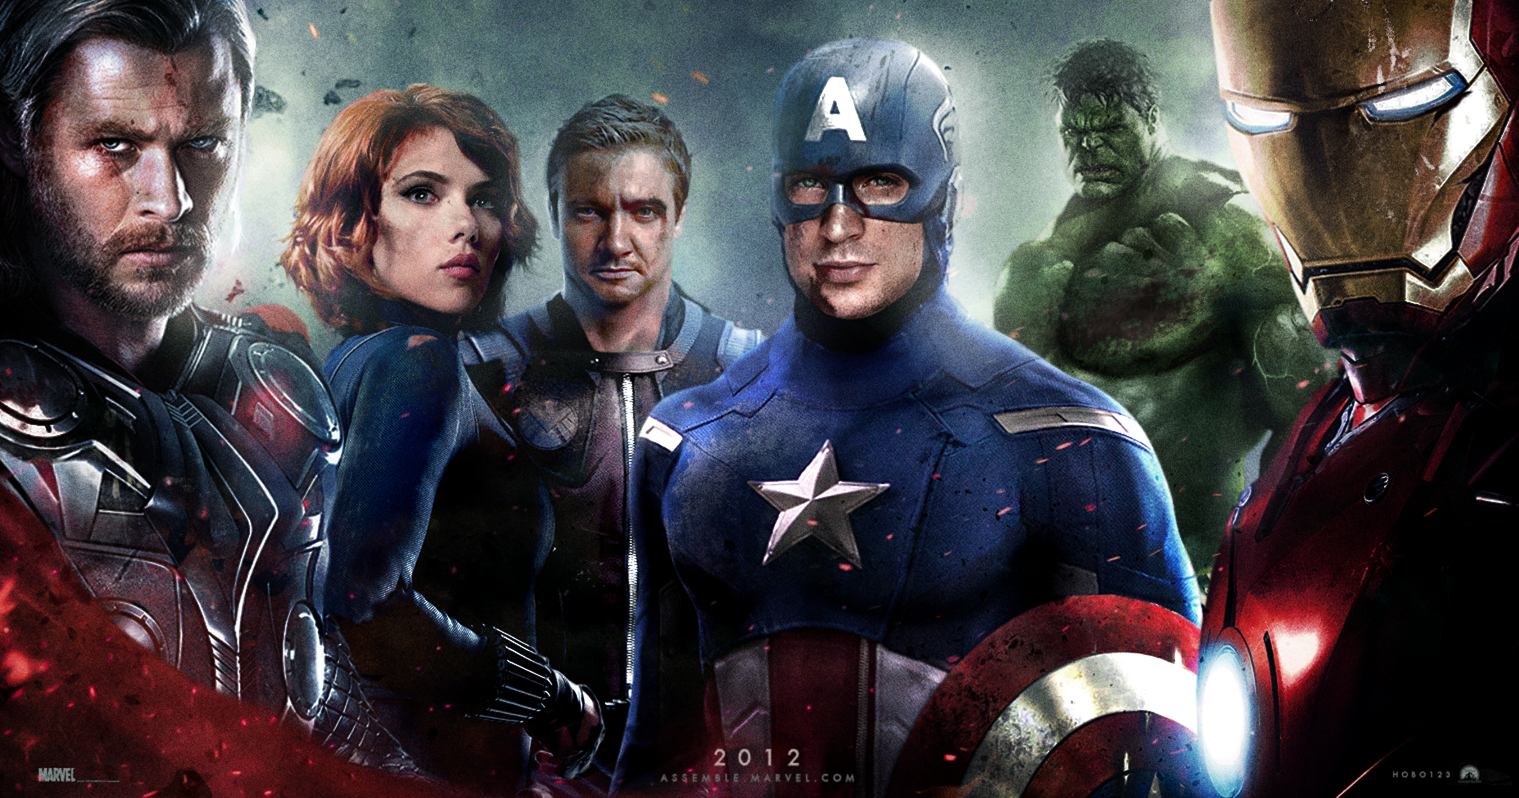 Photo of 4 Major Things That Led To Rebirth of The Avengers